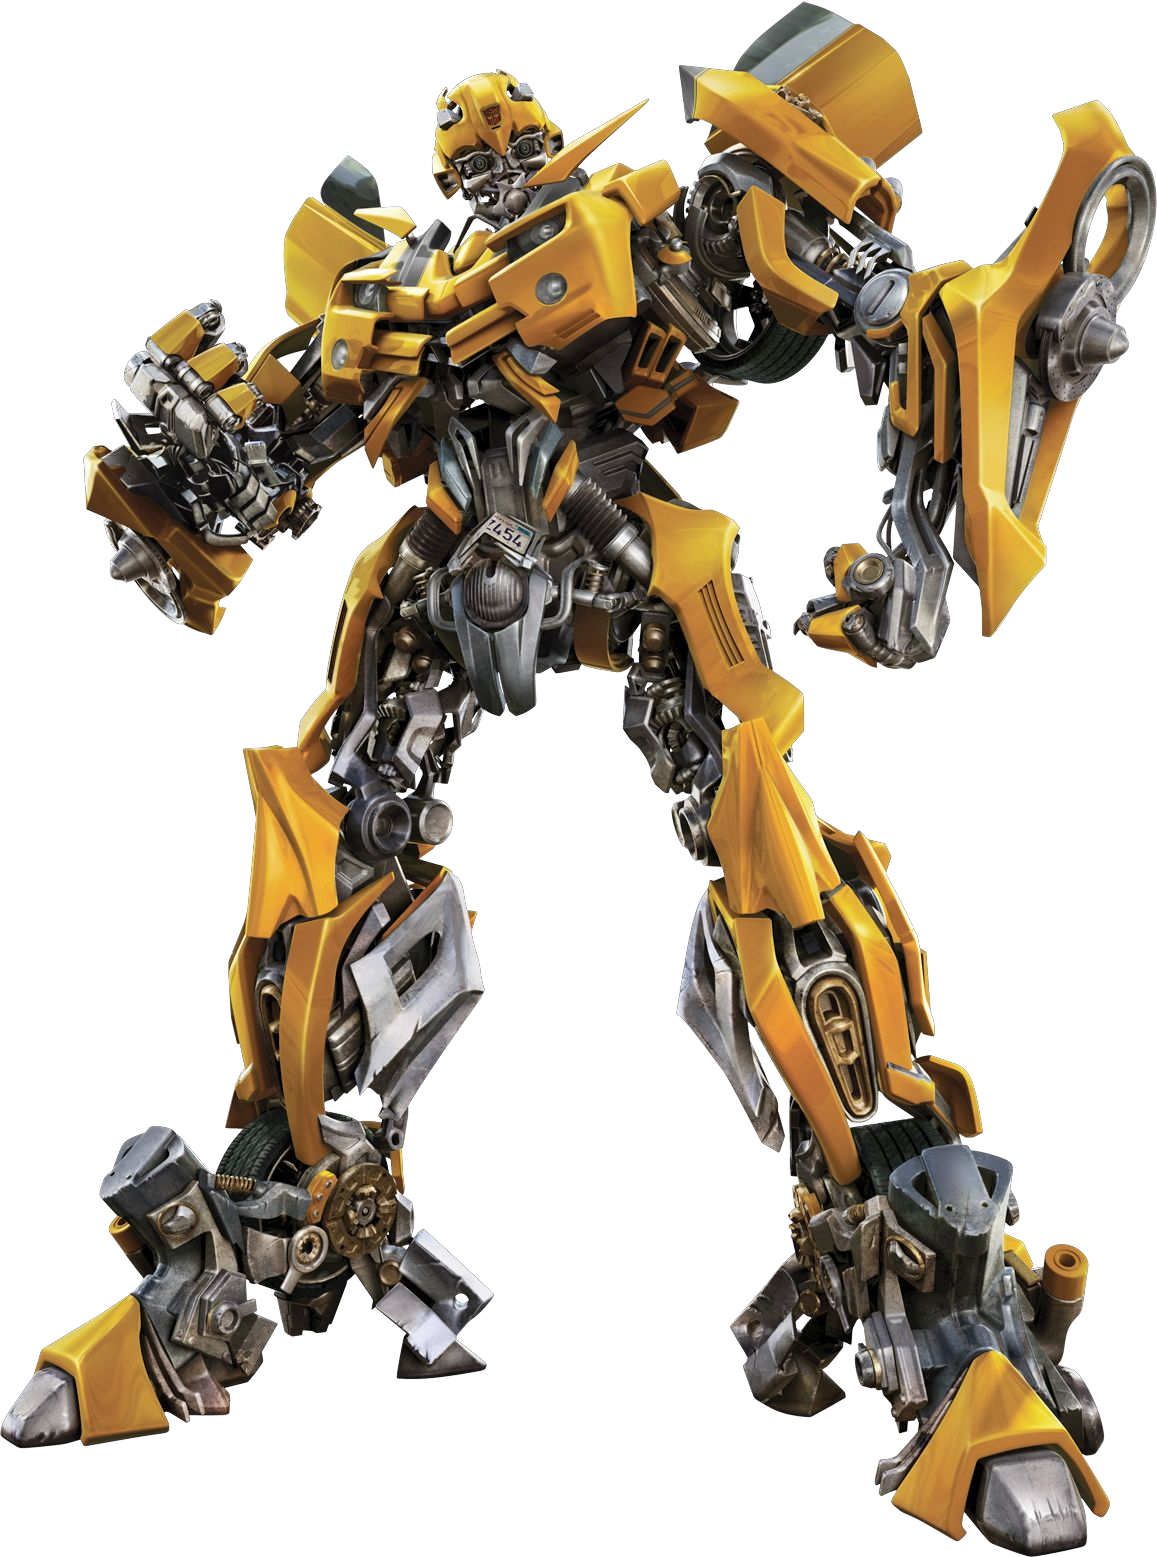 transformers 5 png